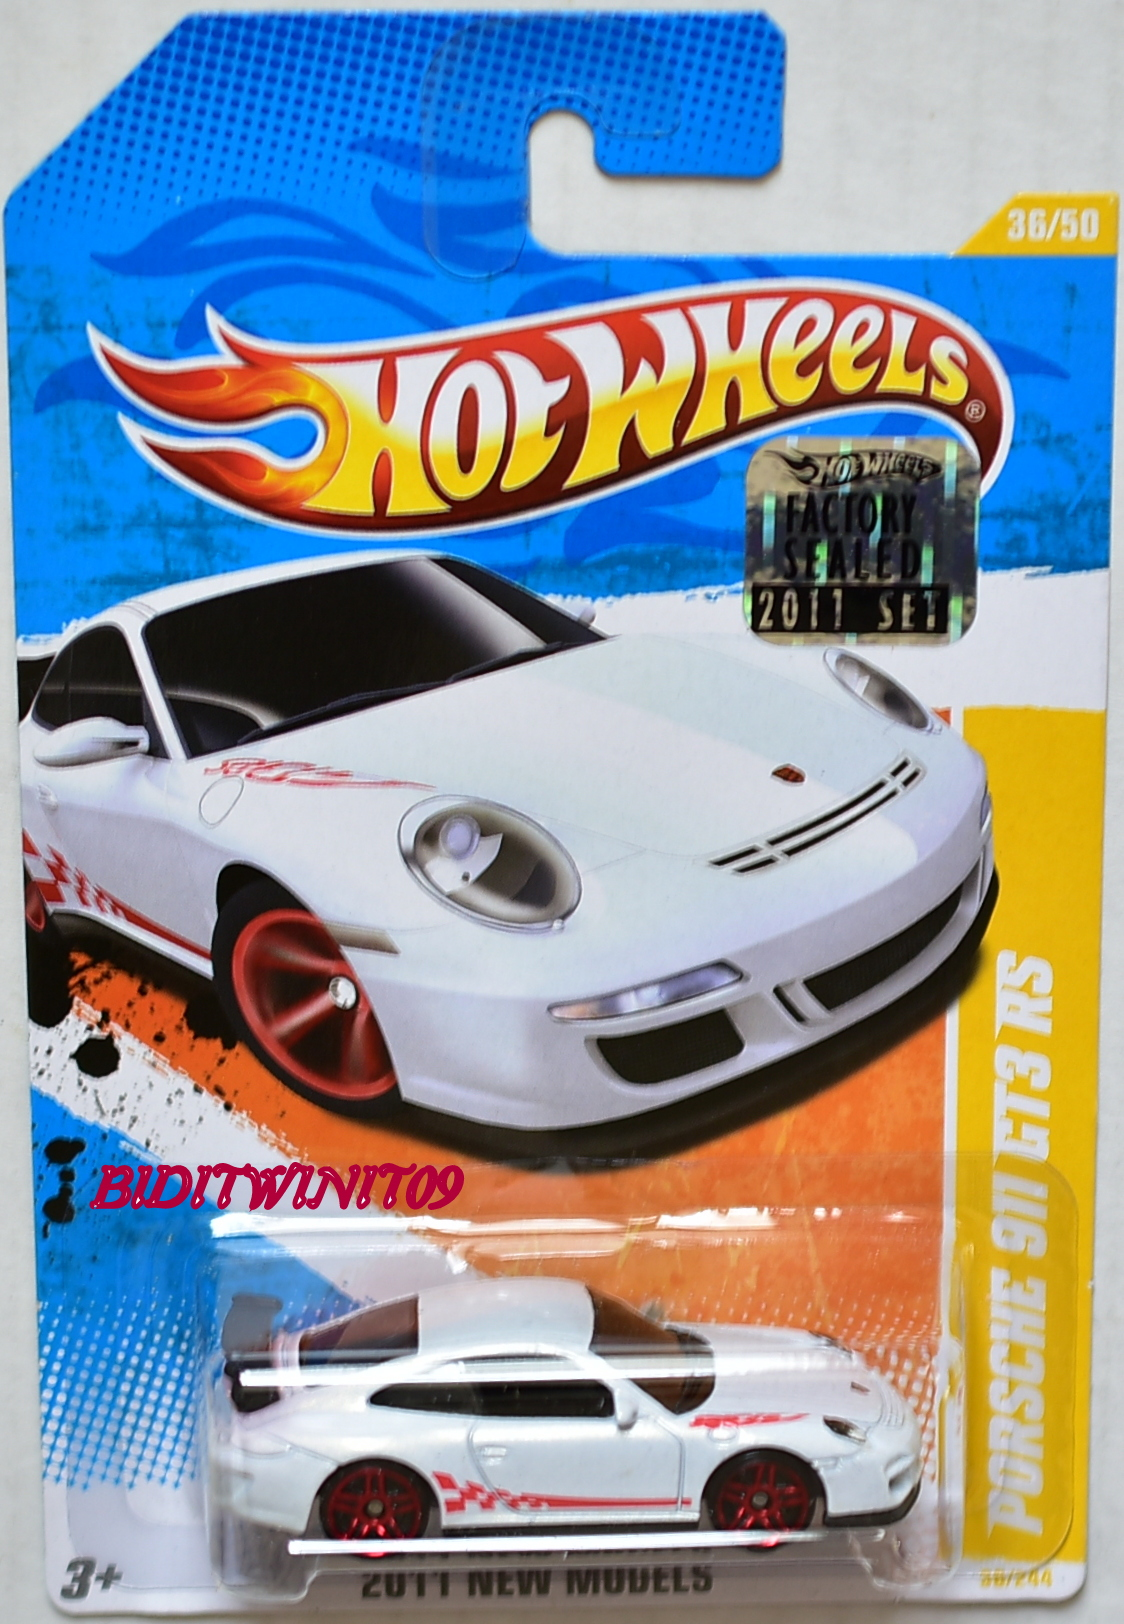 HOT WHEELS 2011 NEW MODELS PORSCHE 911 GT3 RS #36/50 WHITE FACTORY SEALED E+